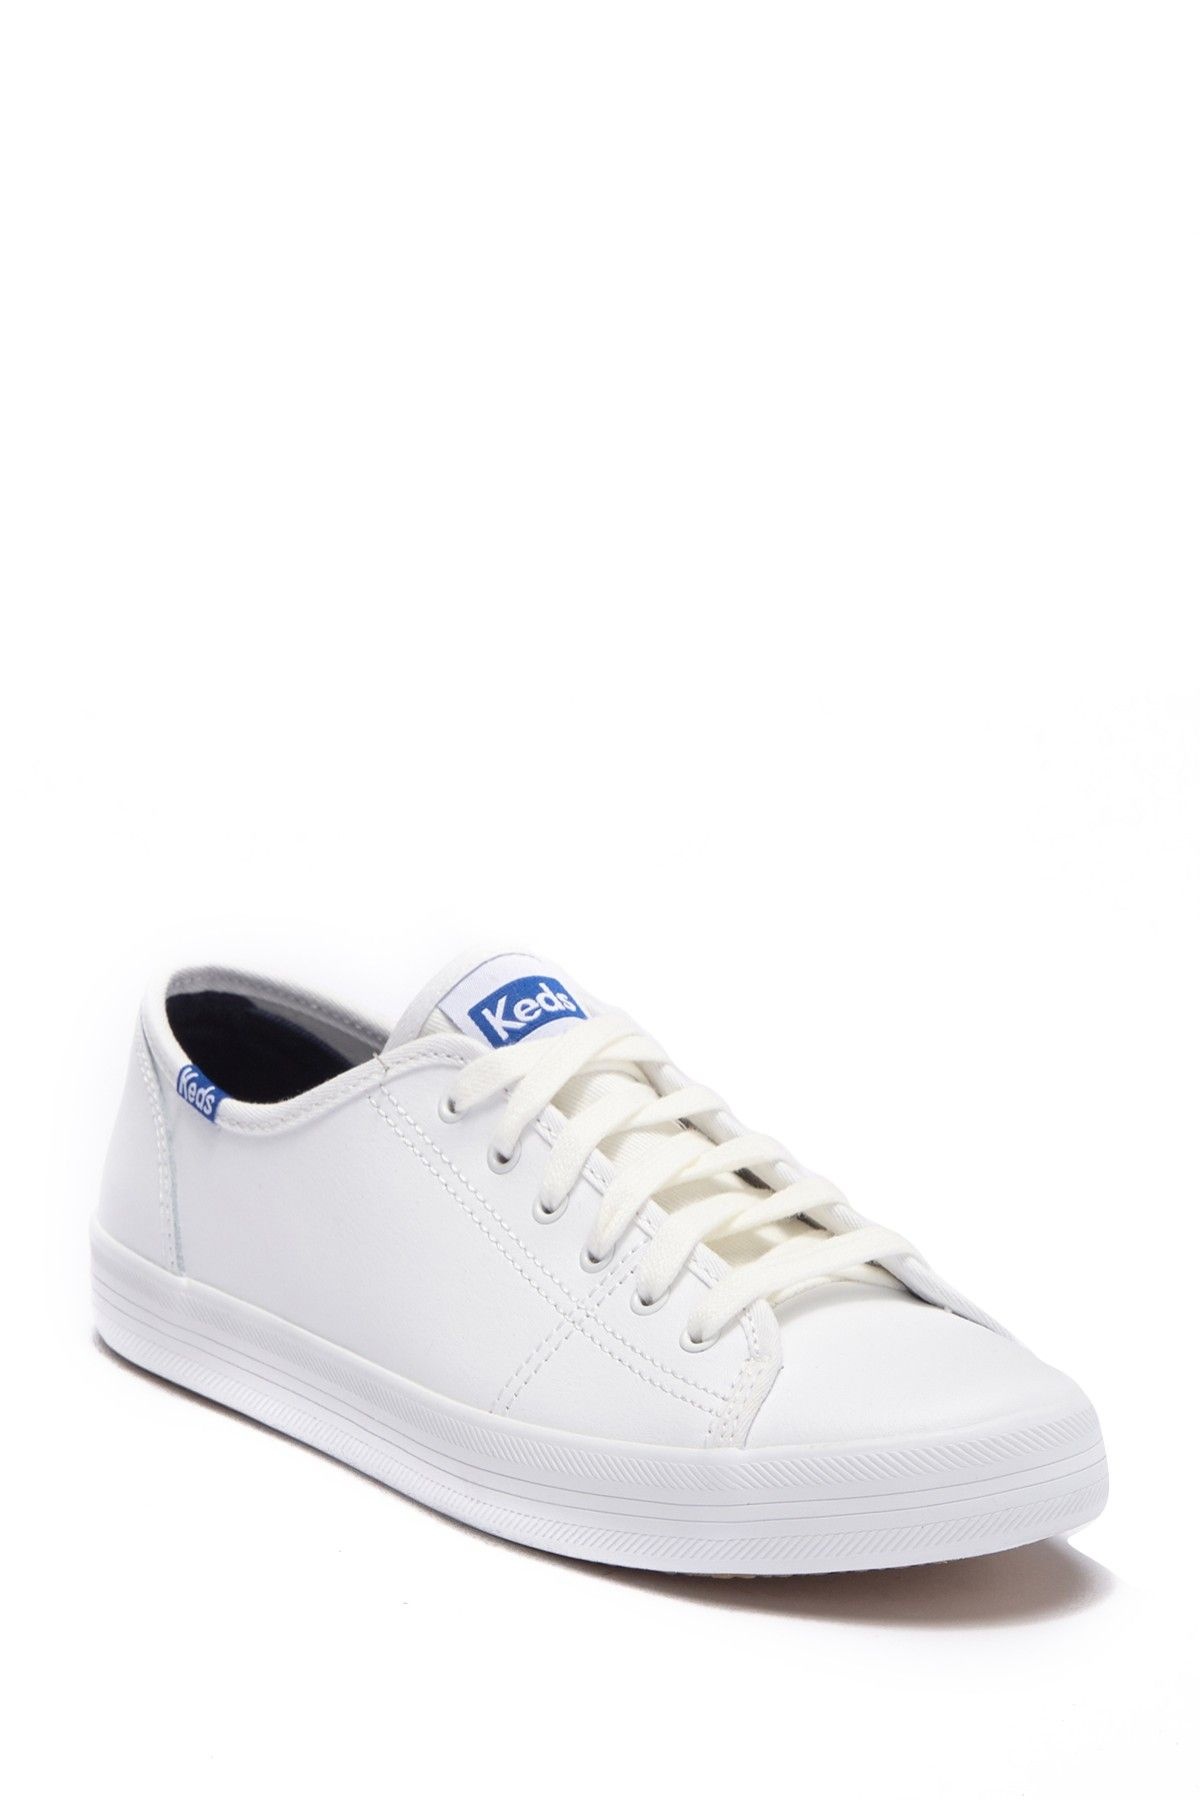 6071c96ca482 Keds - Kickstart Leather Sneaker is now 33% off. Free Shipping on orders  over  100.